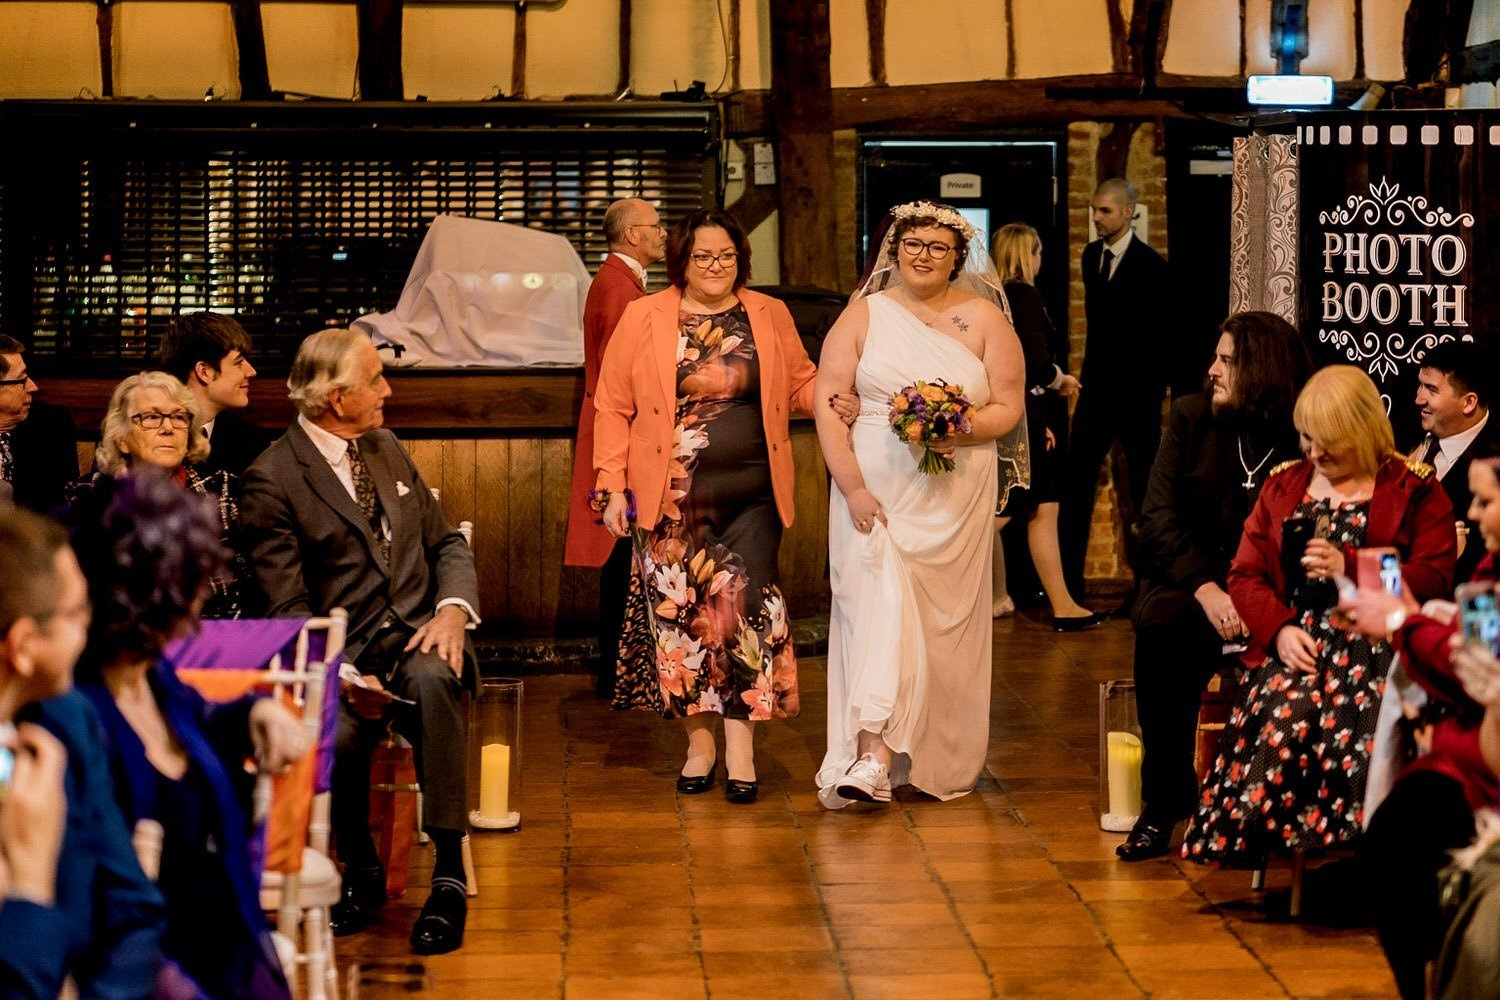 The Barns Hotel Bedford Wooten Weddings Photography Bride walking down the aisle with her mum by her side holding her arm